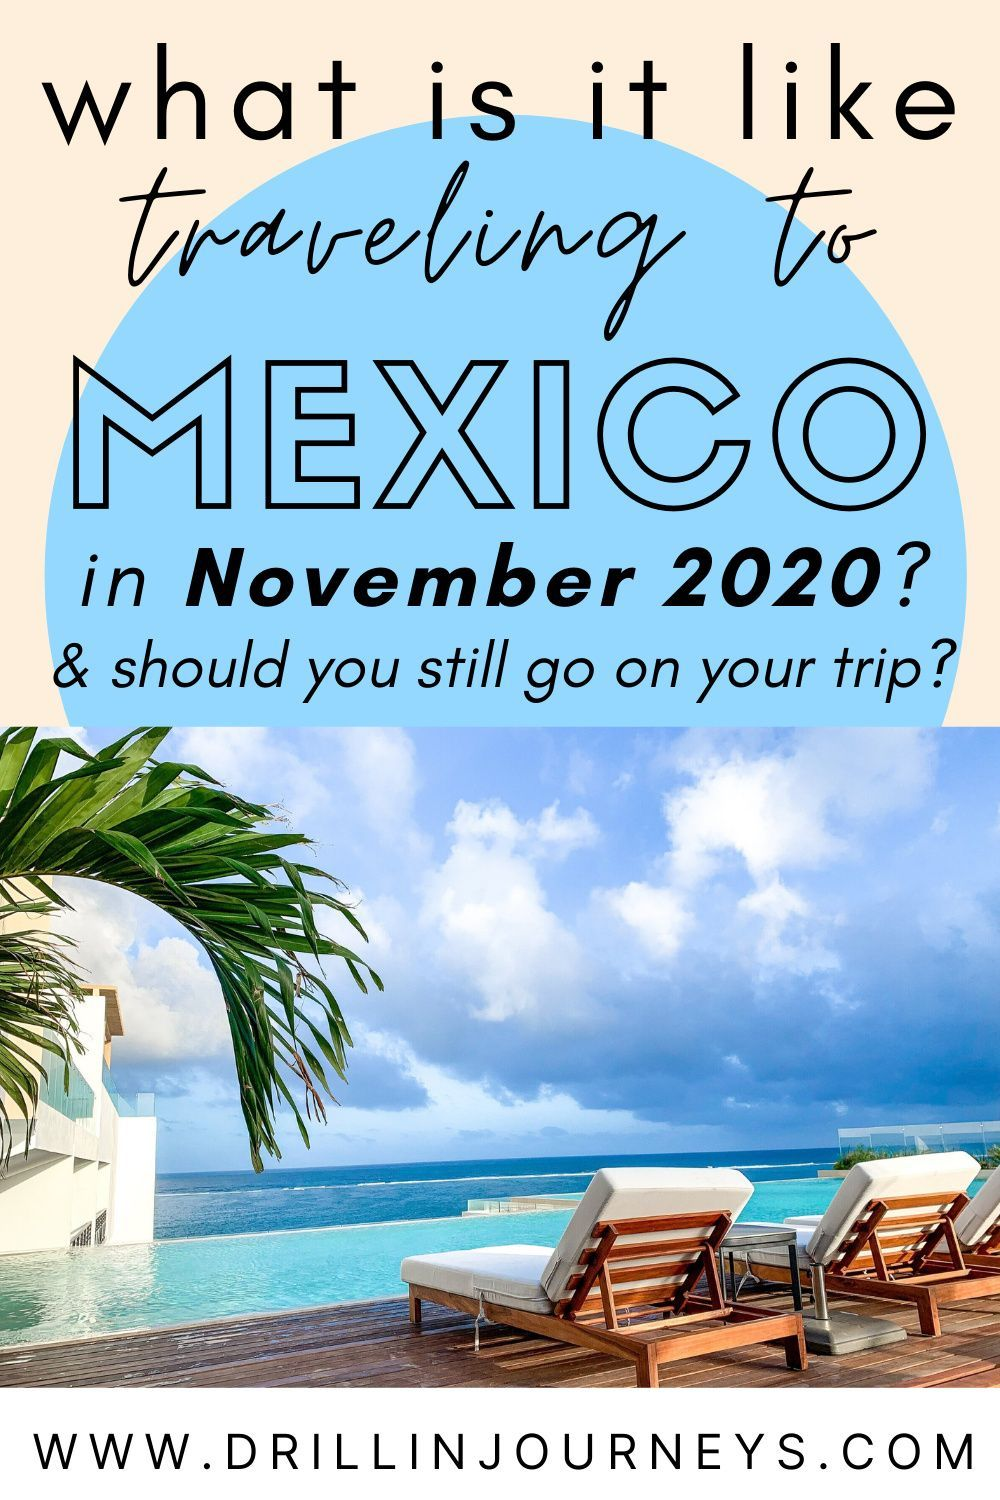 What Is It Like Traveling To Mexico In November 2020 Mexico Travel Tips Drillinjourneys Mexico Travel Cancun Trip Mexico Resorts